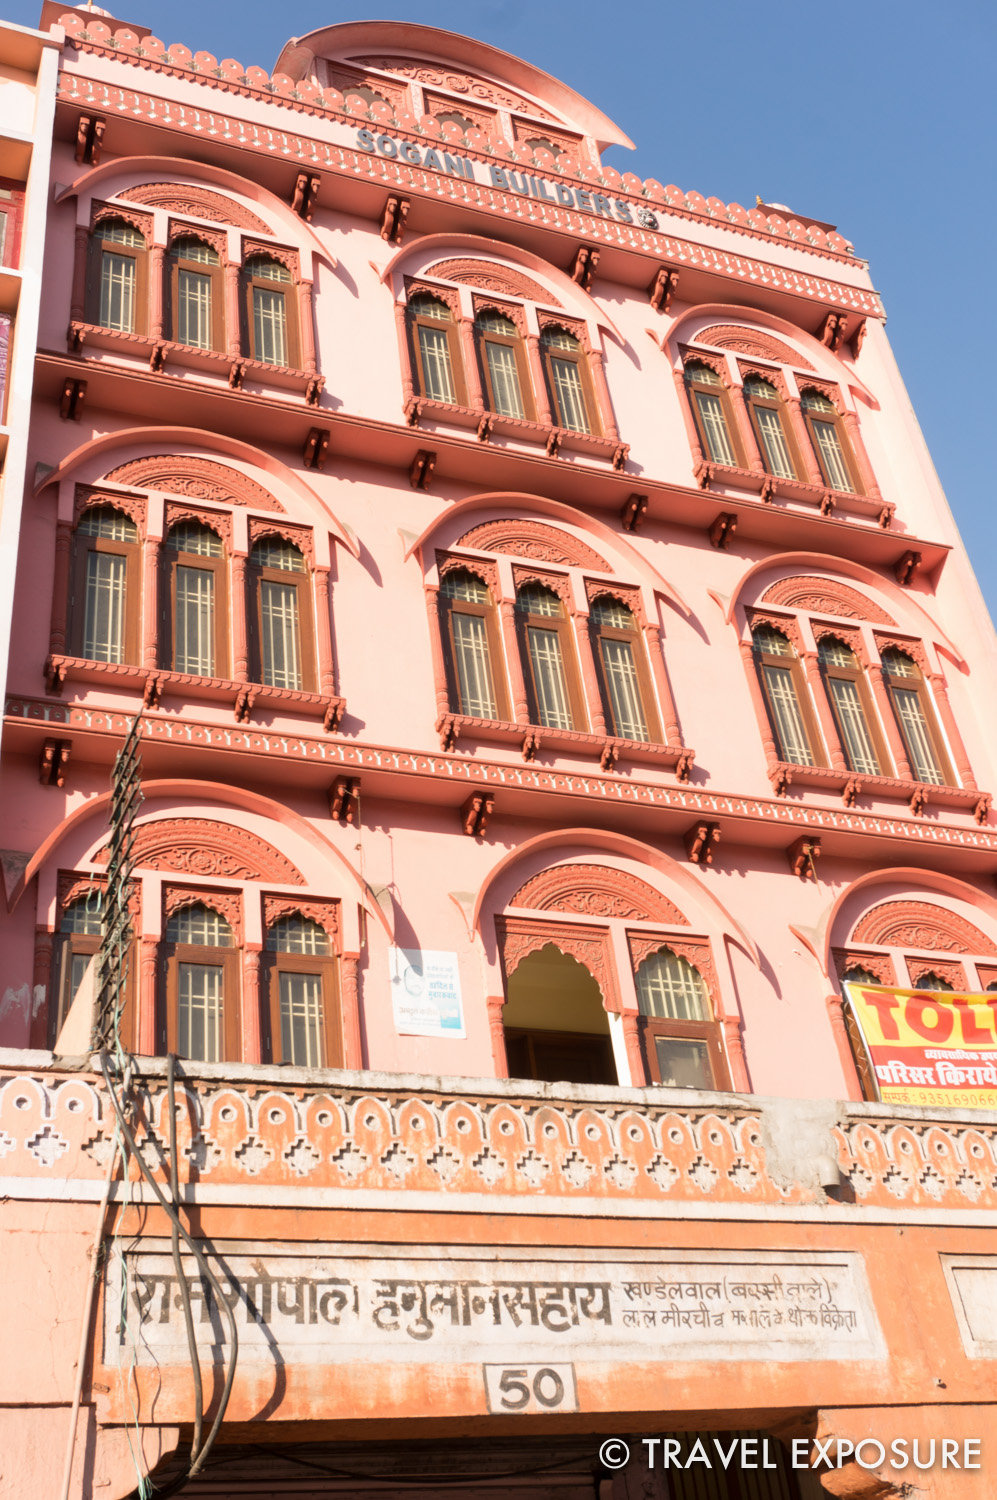 Buildings in Jaipur